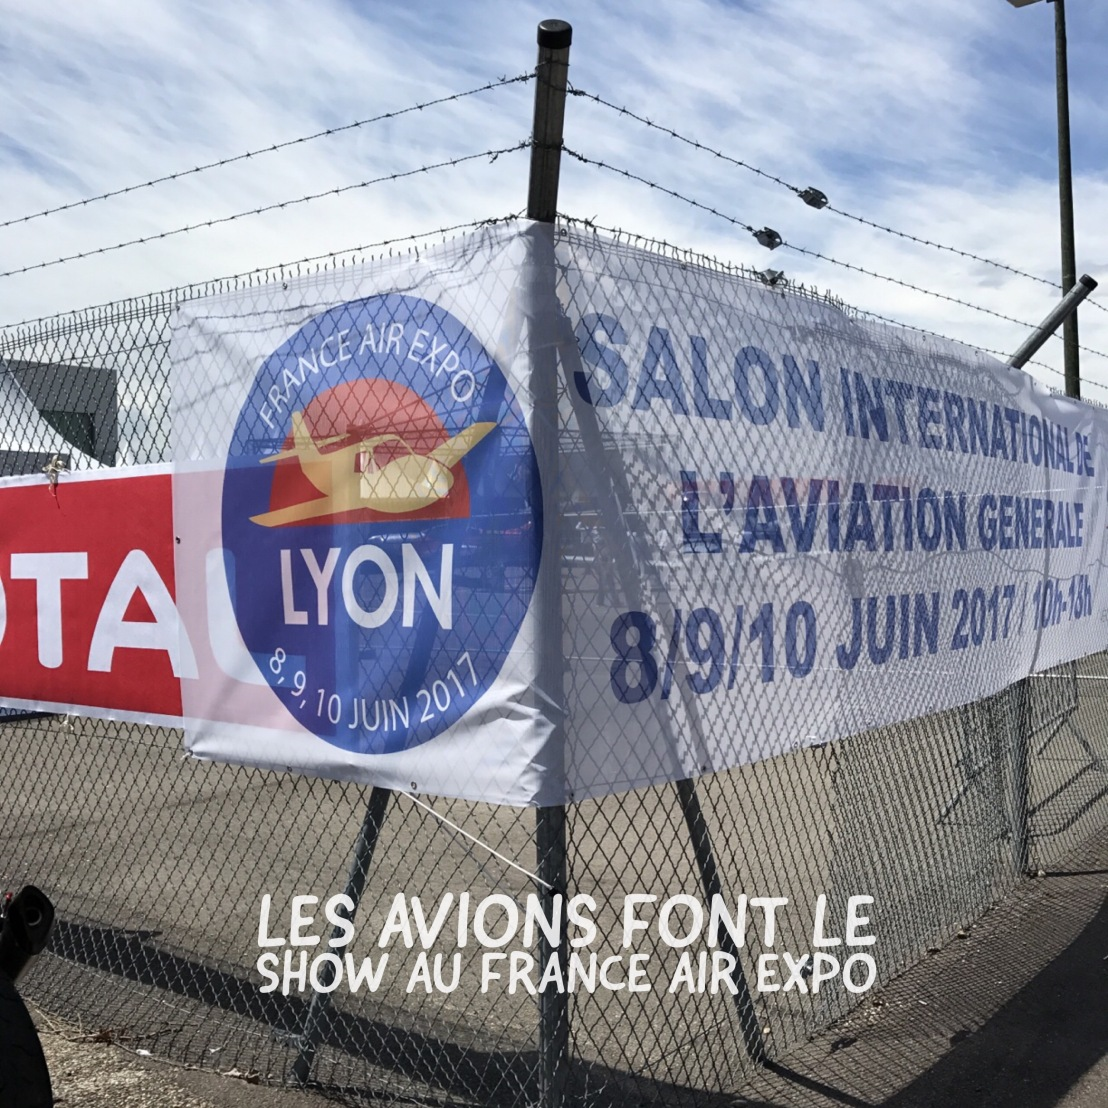 Les avions font le show au salon France Air Expo